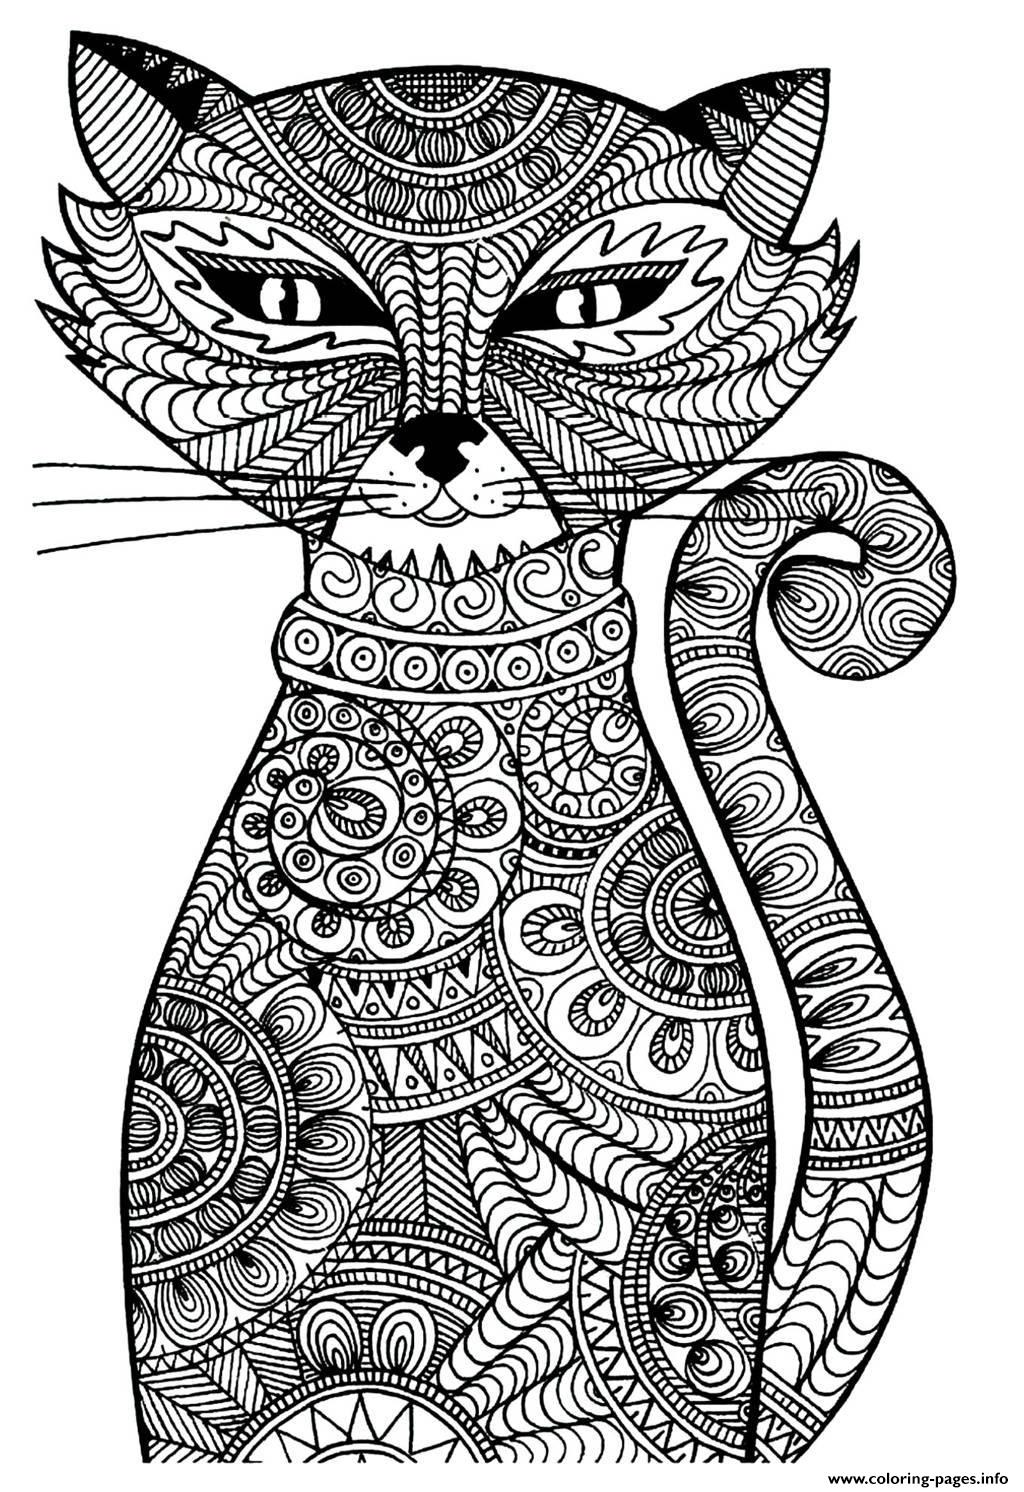 Zen Cat Coloring Page for Adults